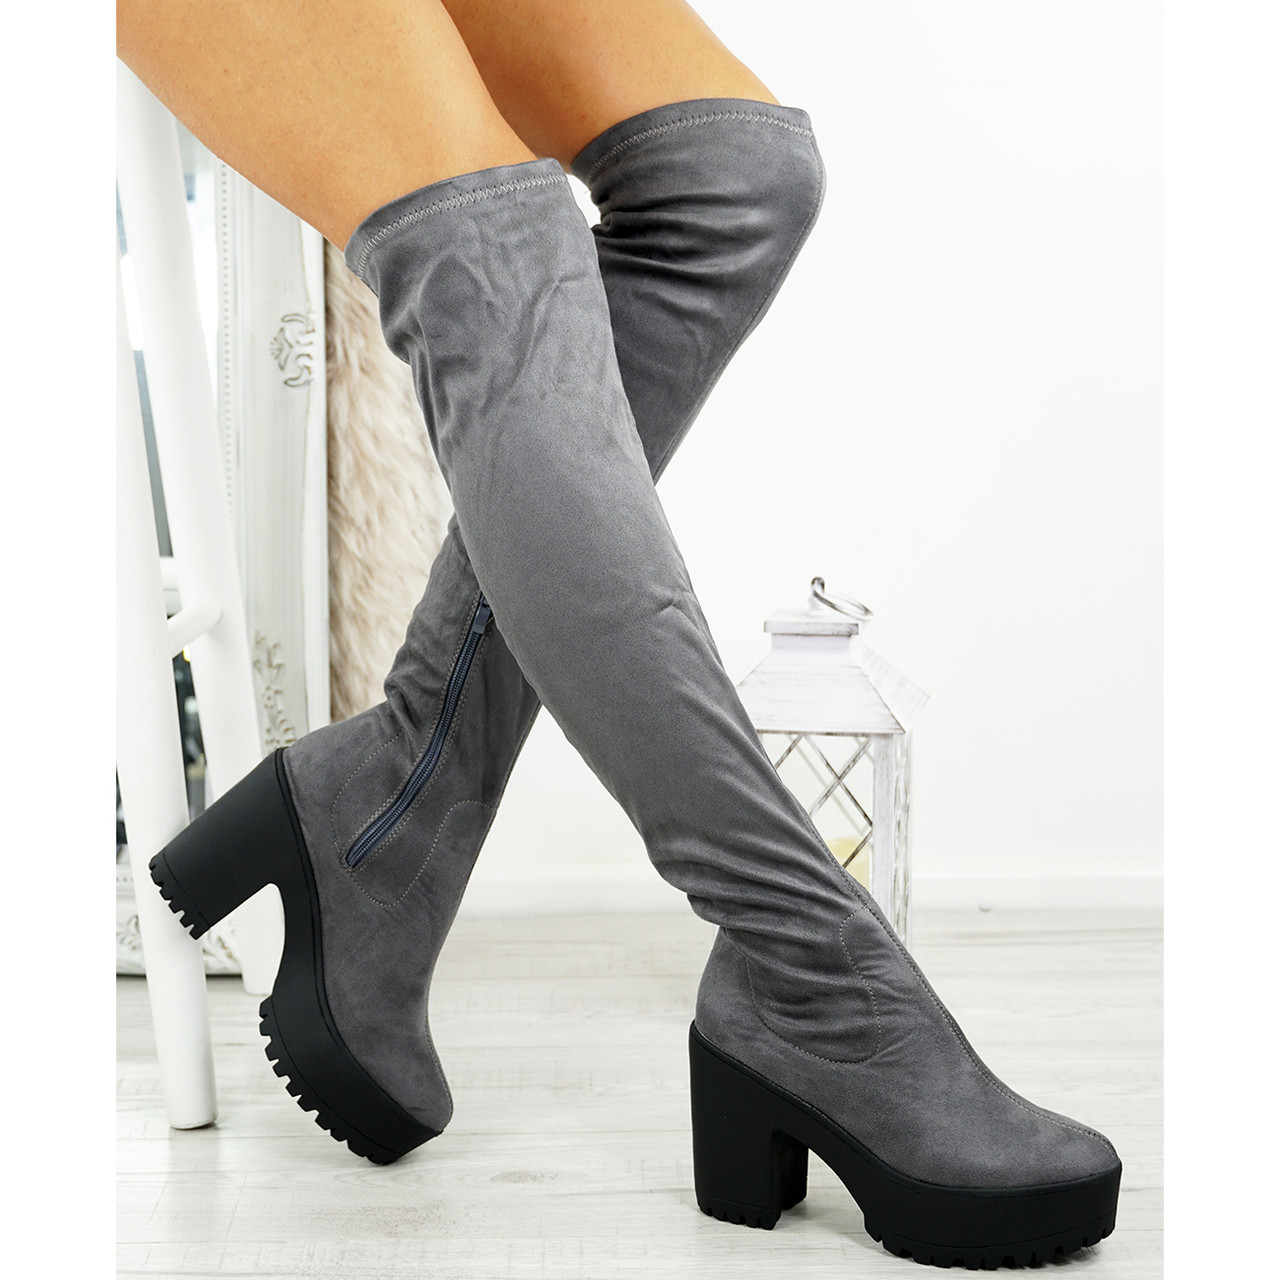 21a71fc3aea4 Womens Ladies Over The Knee Boots Chunky Heel Platform Grip ...